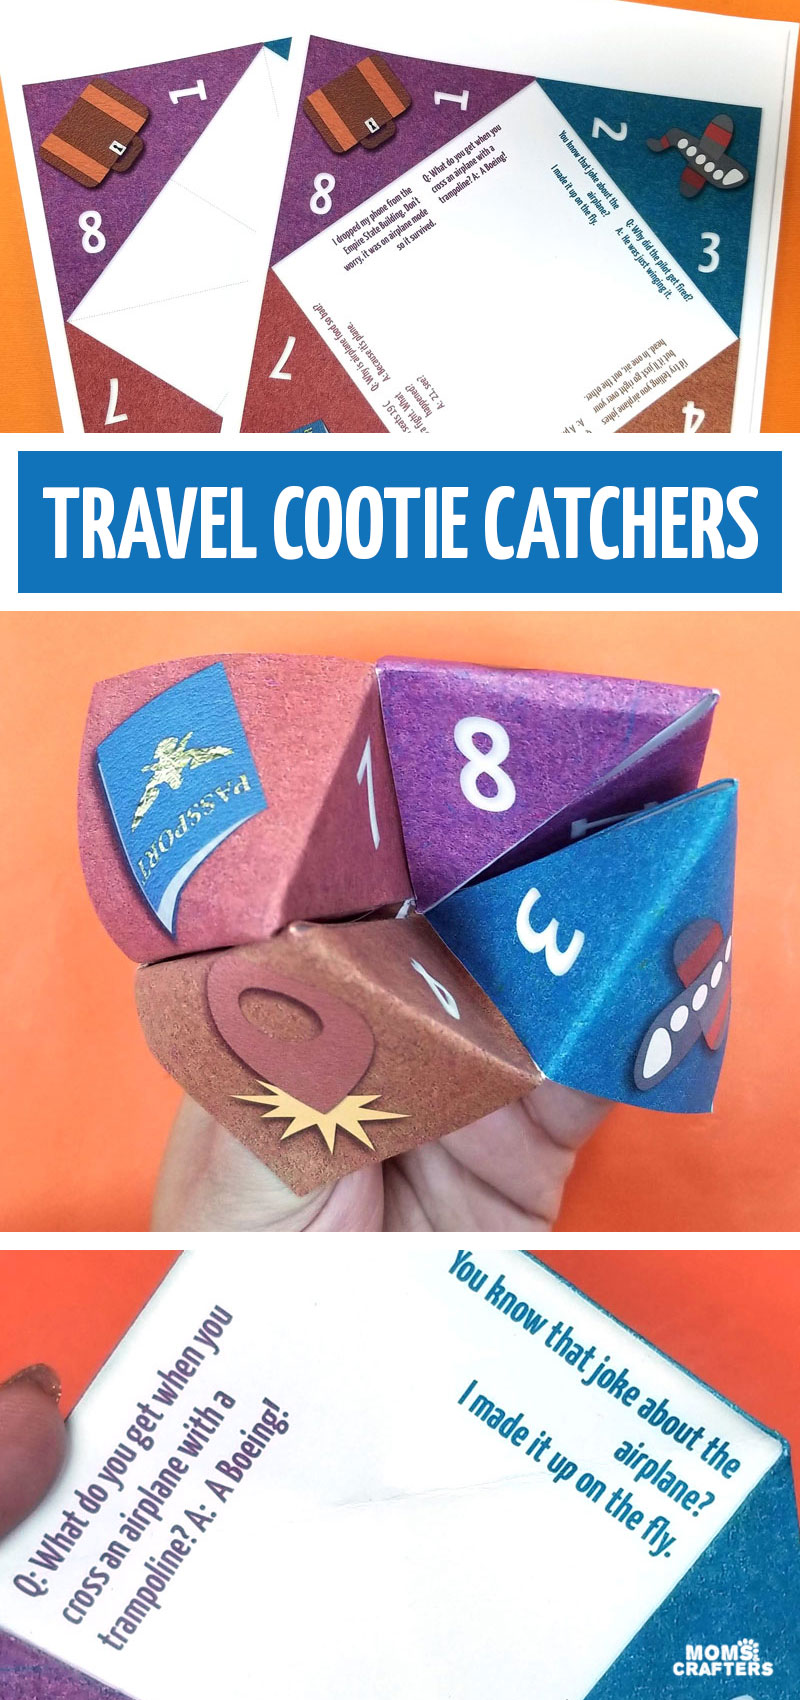 Free printable cootie catcher template for air travel! Print this free printable activity for your interational flight - or even a short road trip! Perfect for kids ages 6+ or 8+